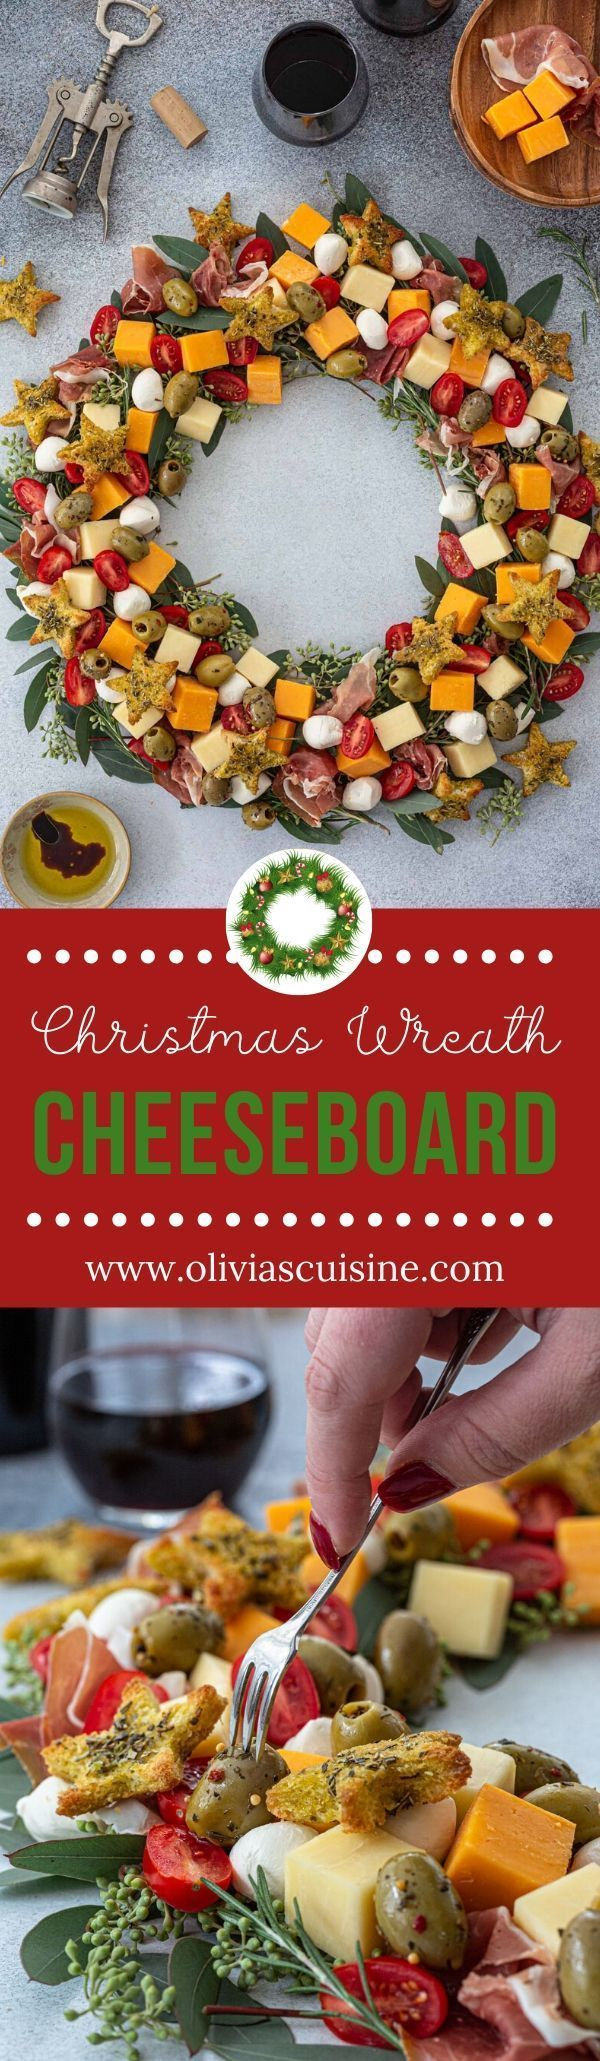 Christmas Wreath Cheeseboard | www.oliviascuisine.com | A simple but festive Christmas Wreath Cheeseboard is all you need to get the party started! It is easy to recreate and will have your guests oohing and aahing at first sight. (Follow @oliviascuisine for more delicious recipes.) #cheeseboard #cheese #cheeseplate #cheeseplatter #appetizers #christmas